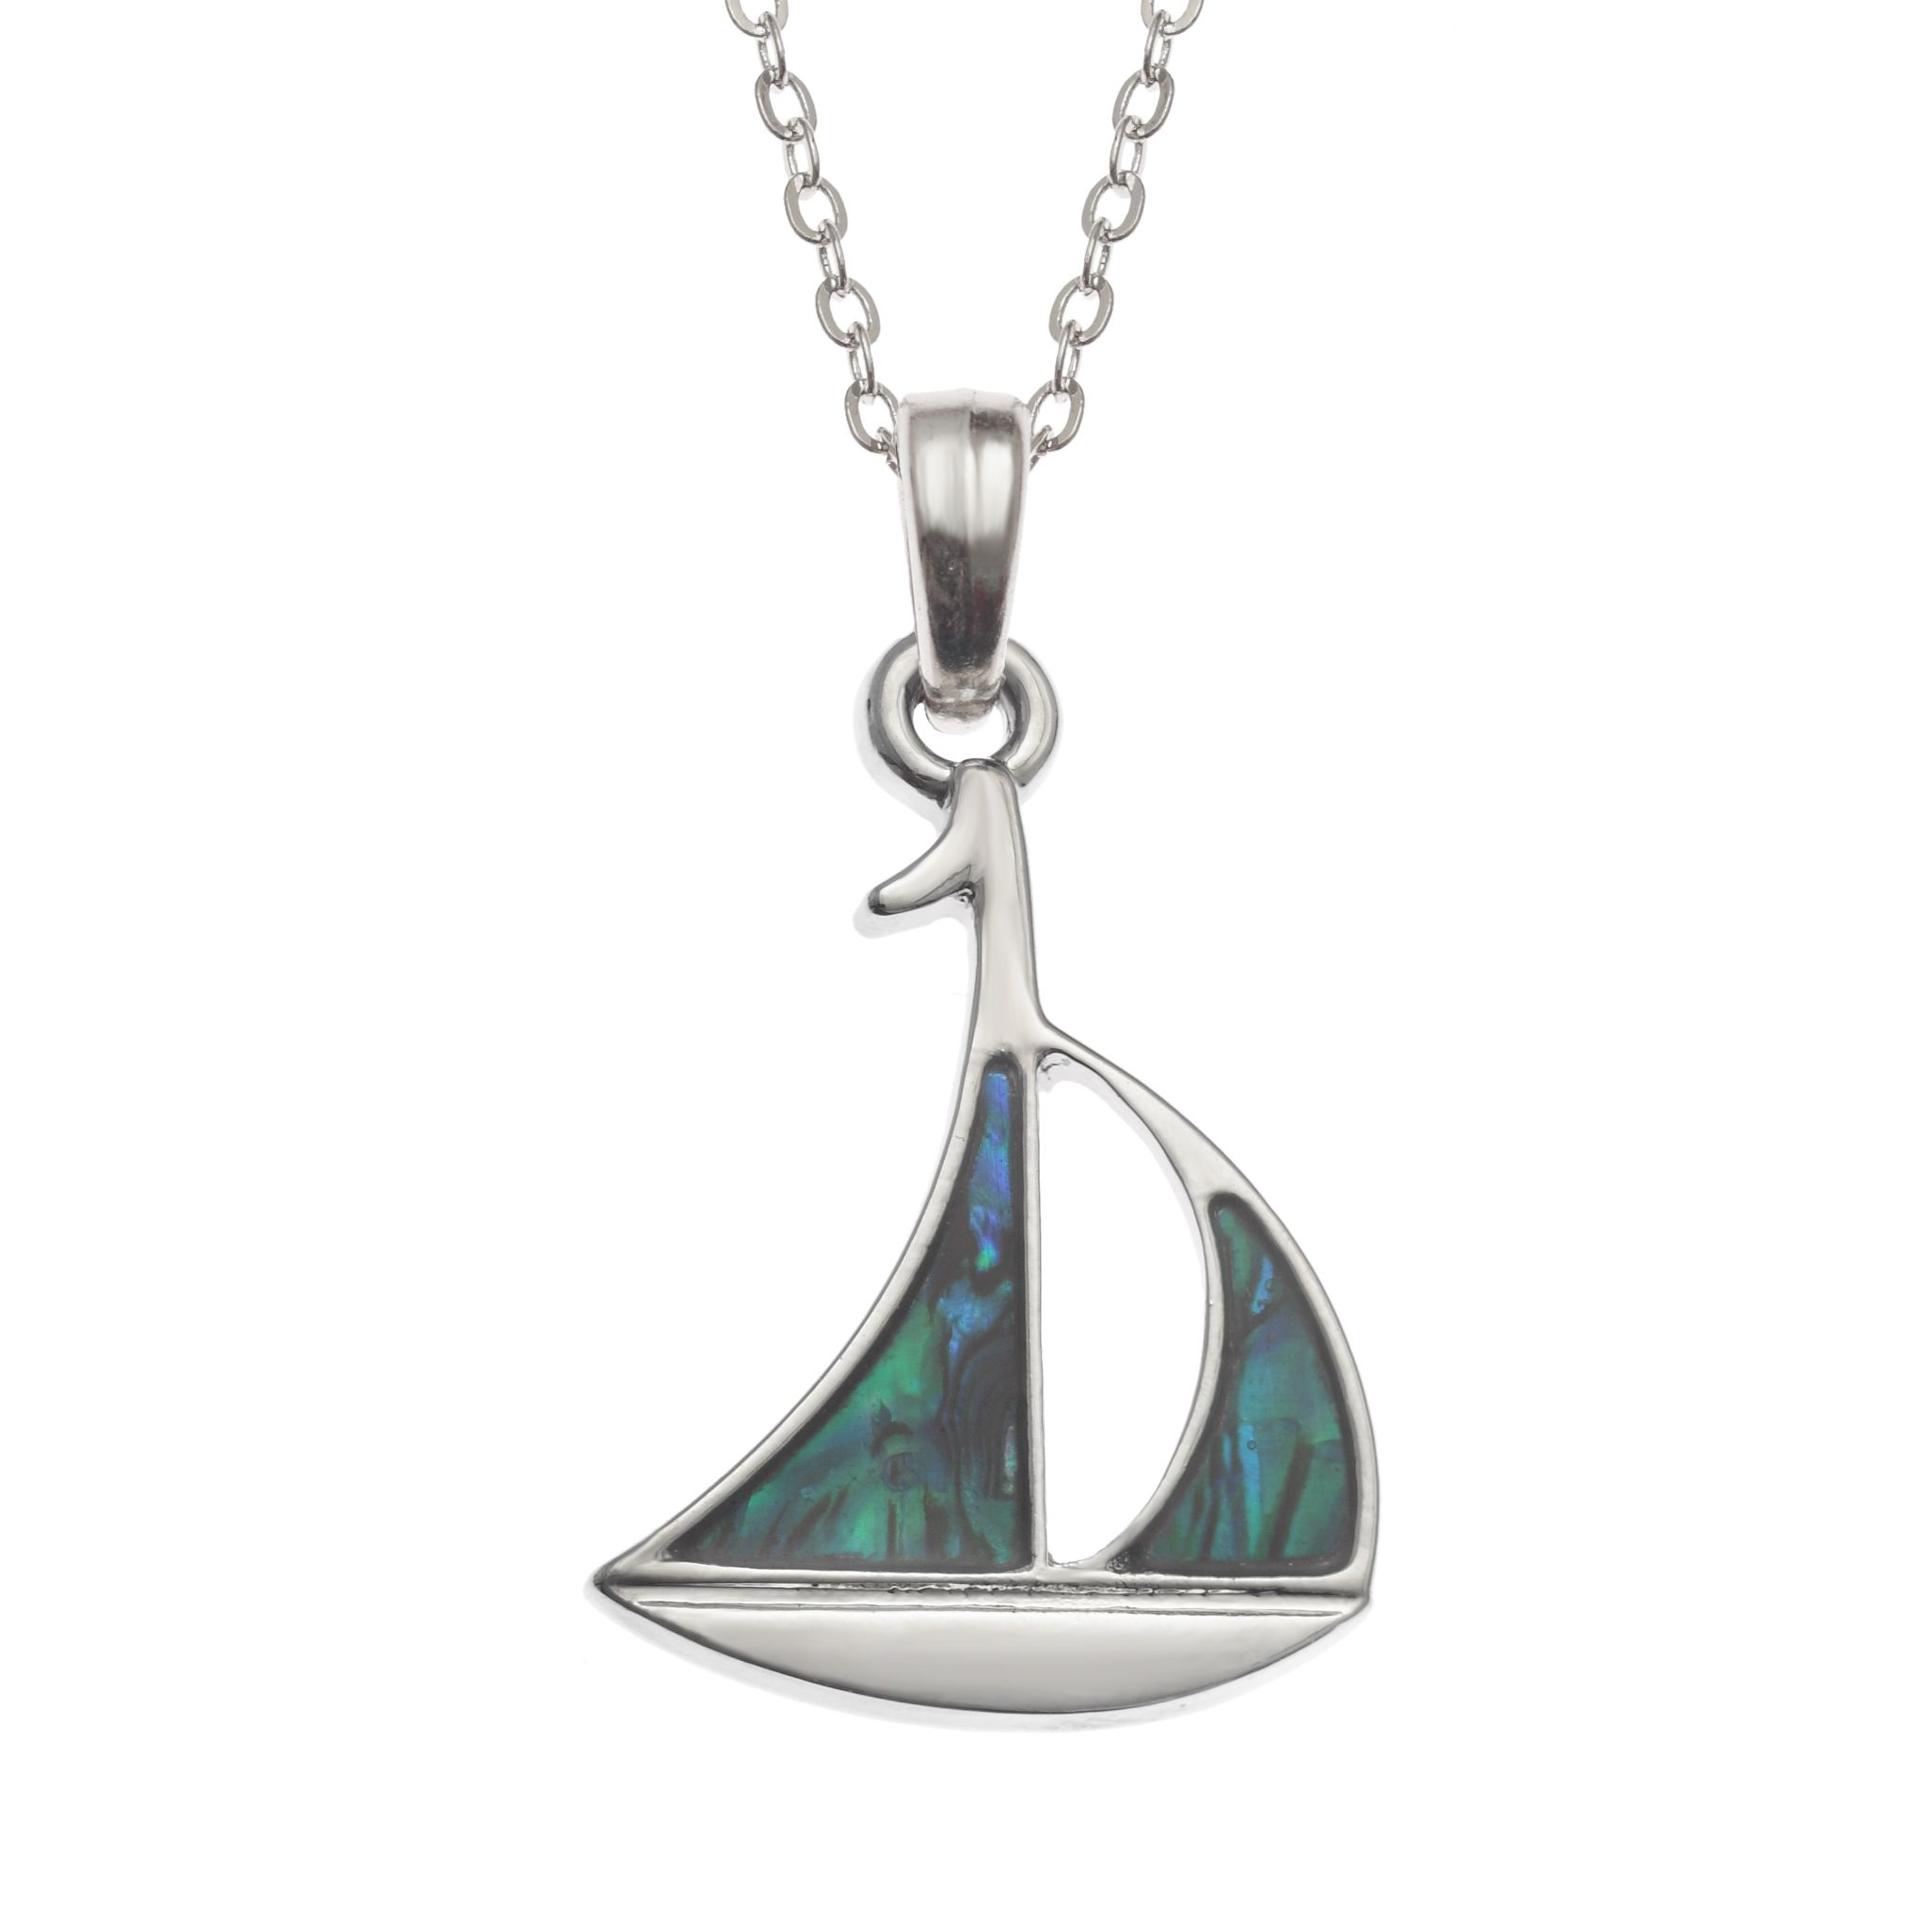 paua macindoe charm necklaces pendant shop silver necklace kate shell